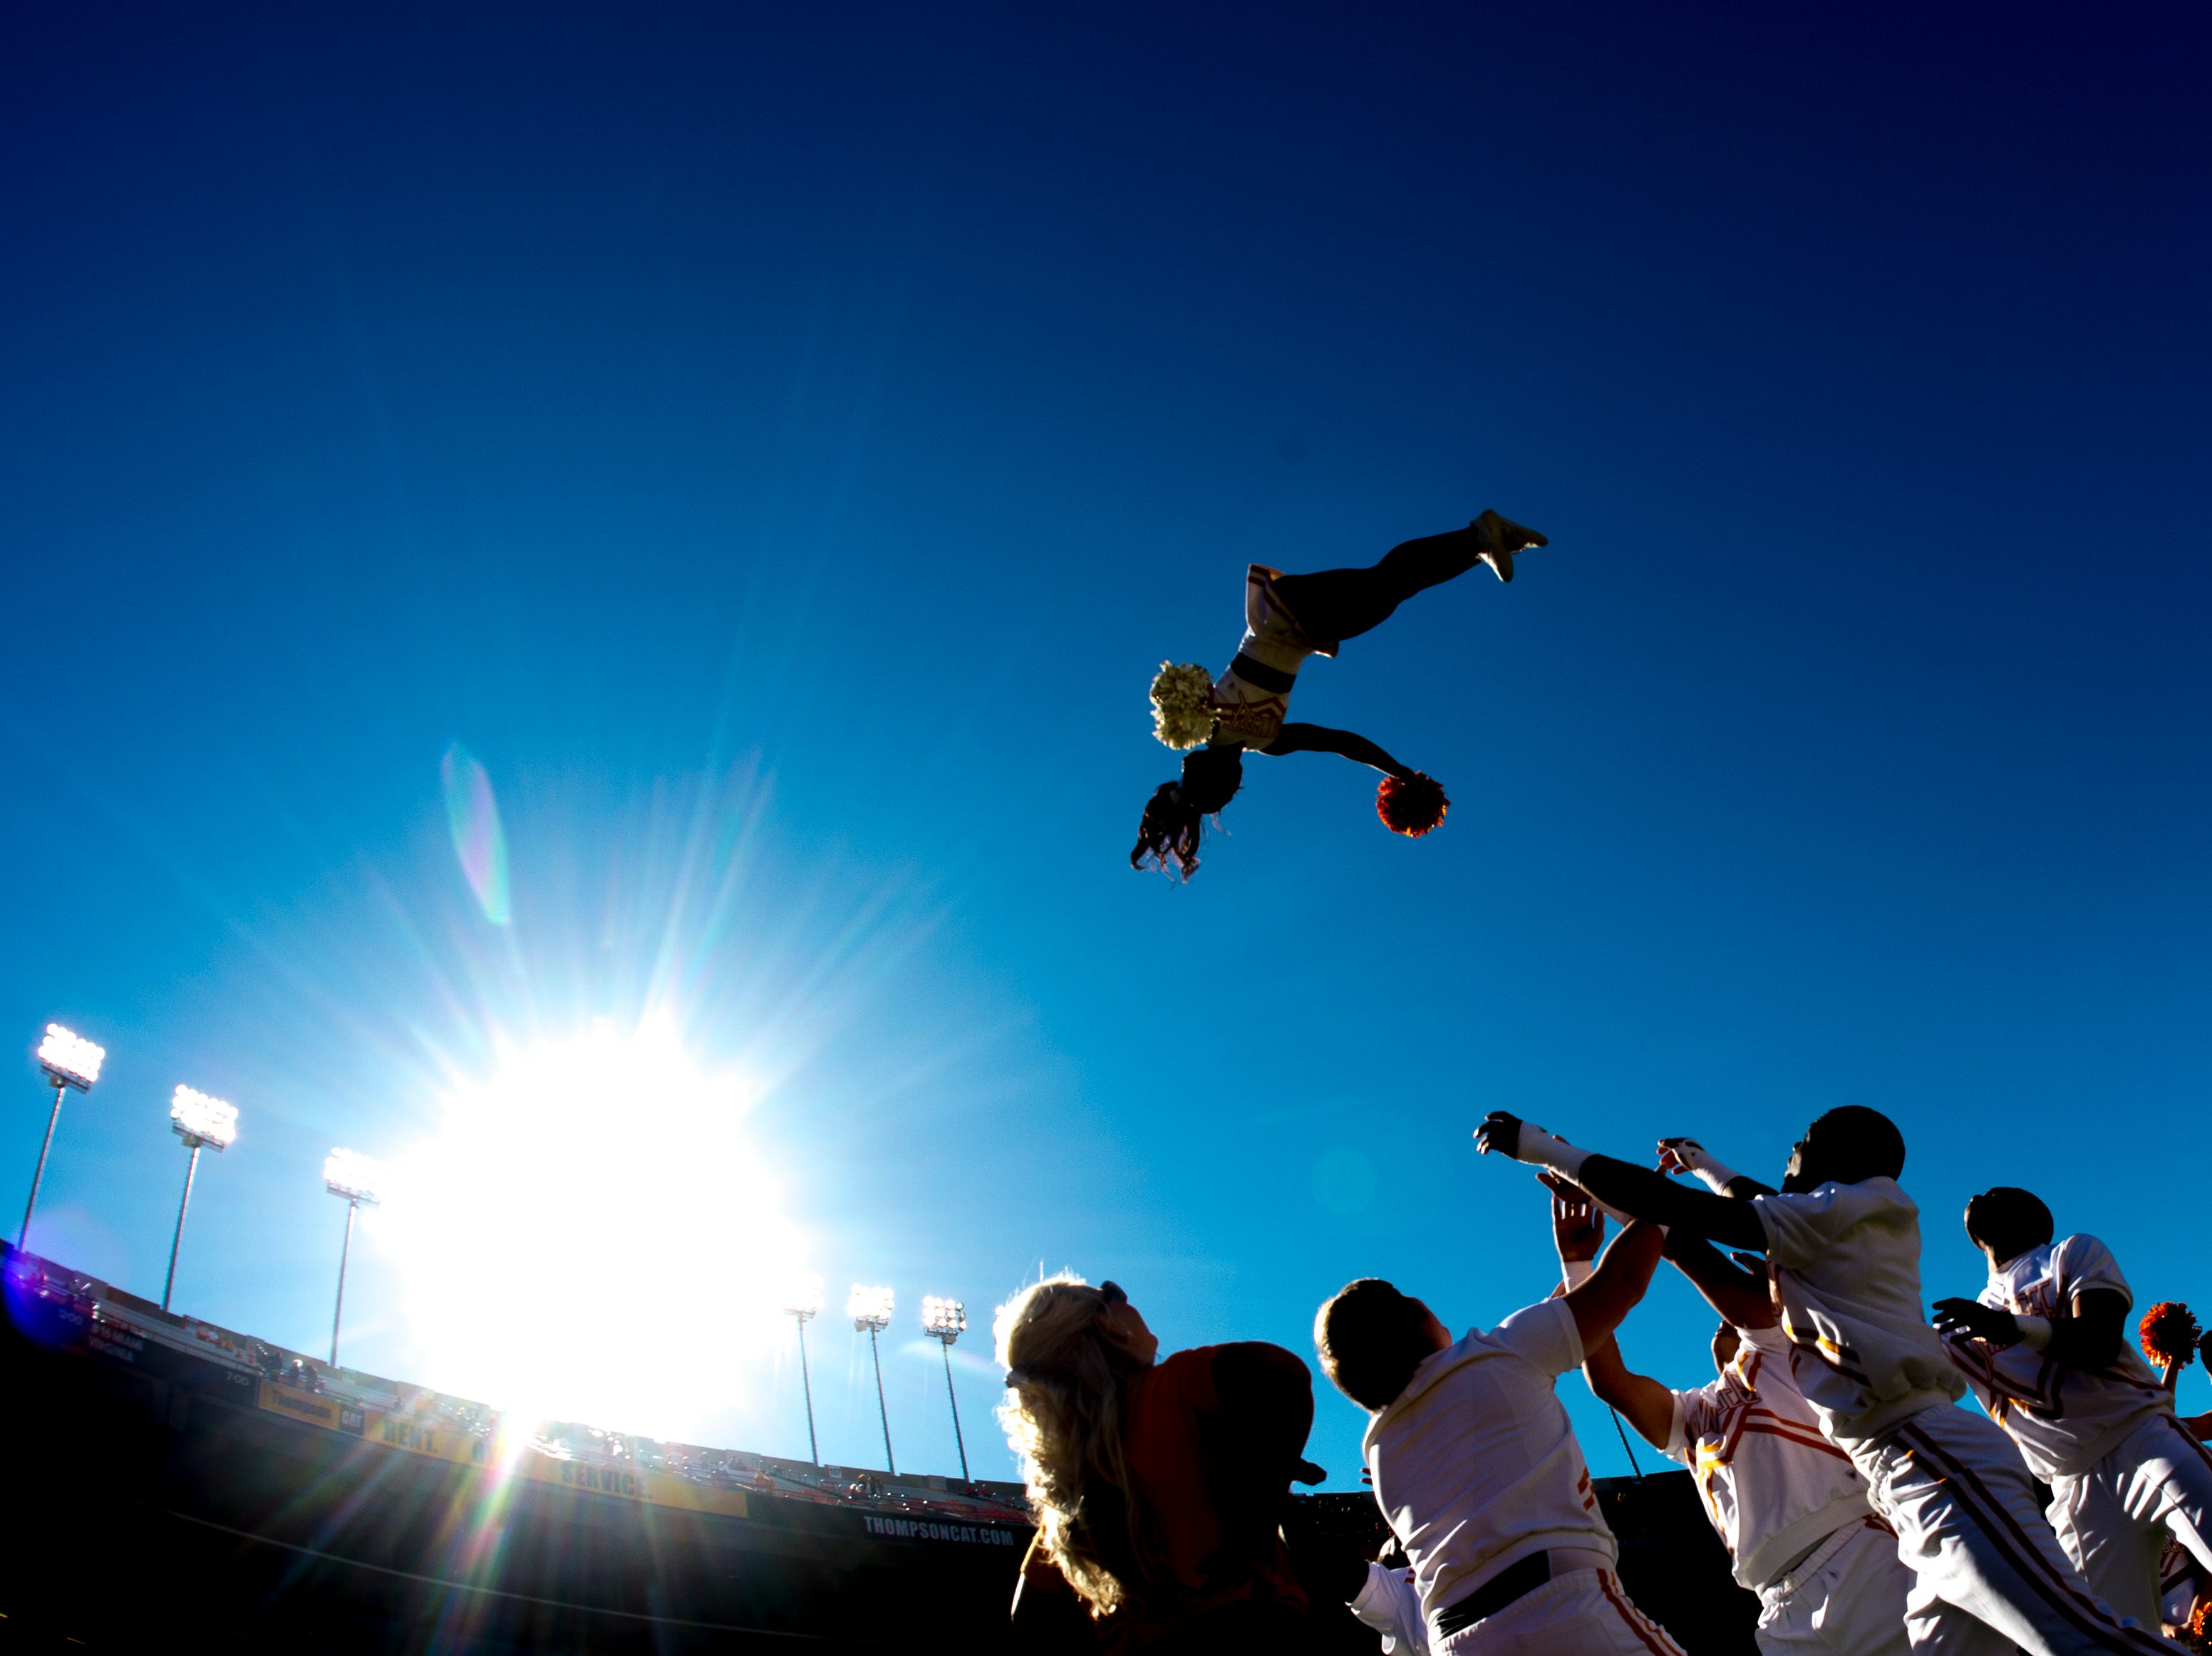 Tennessee cheerleaders perform a stunt during a game between Tennessee and Auburn at Jordan-Hare Stadium in Auburn, Alabama on Saturday, October 13, 2018.